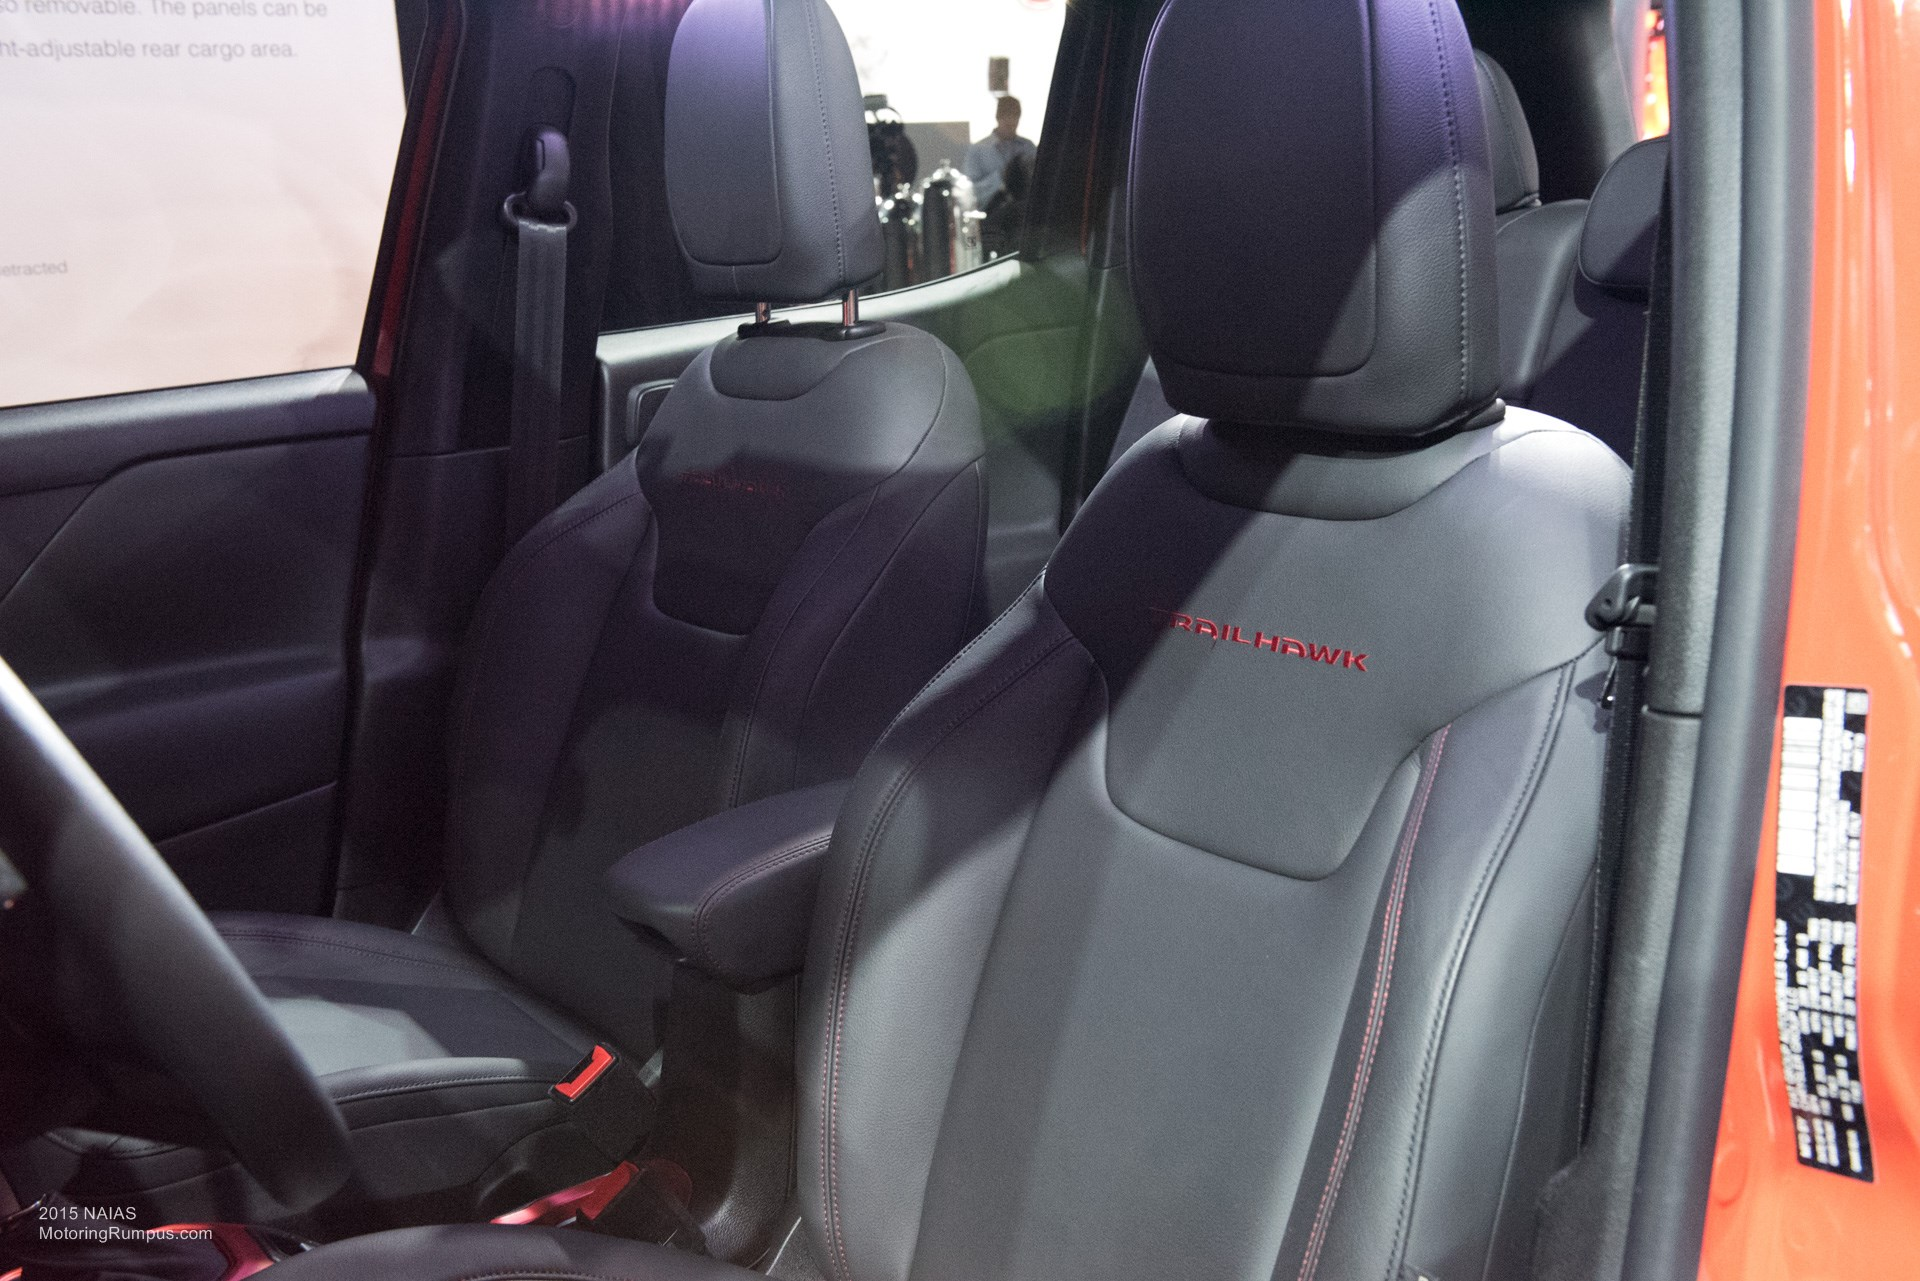 2015 NAIAS Jeep Renegade Trailhawk Seats